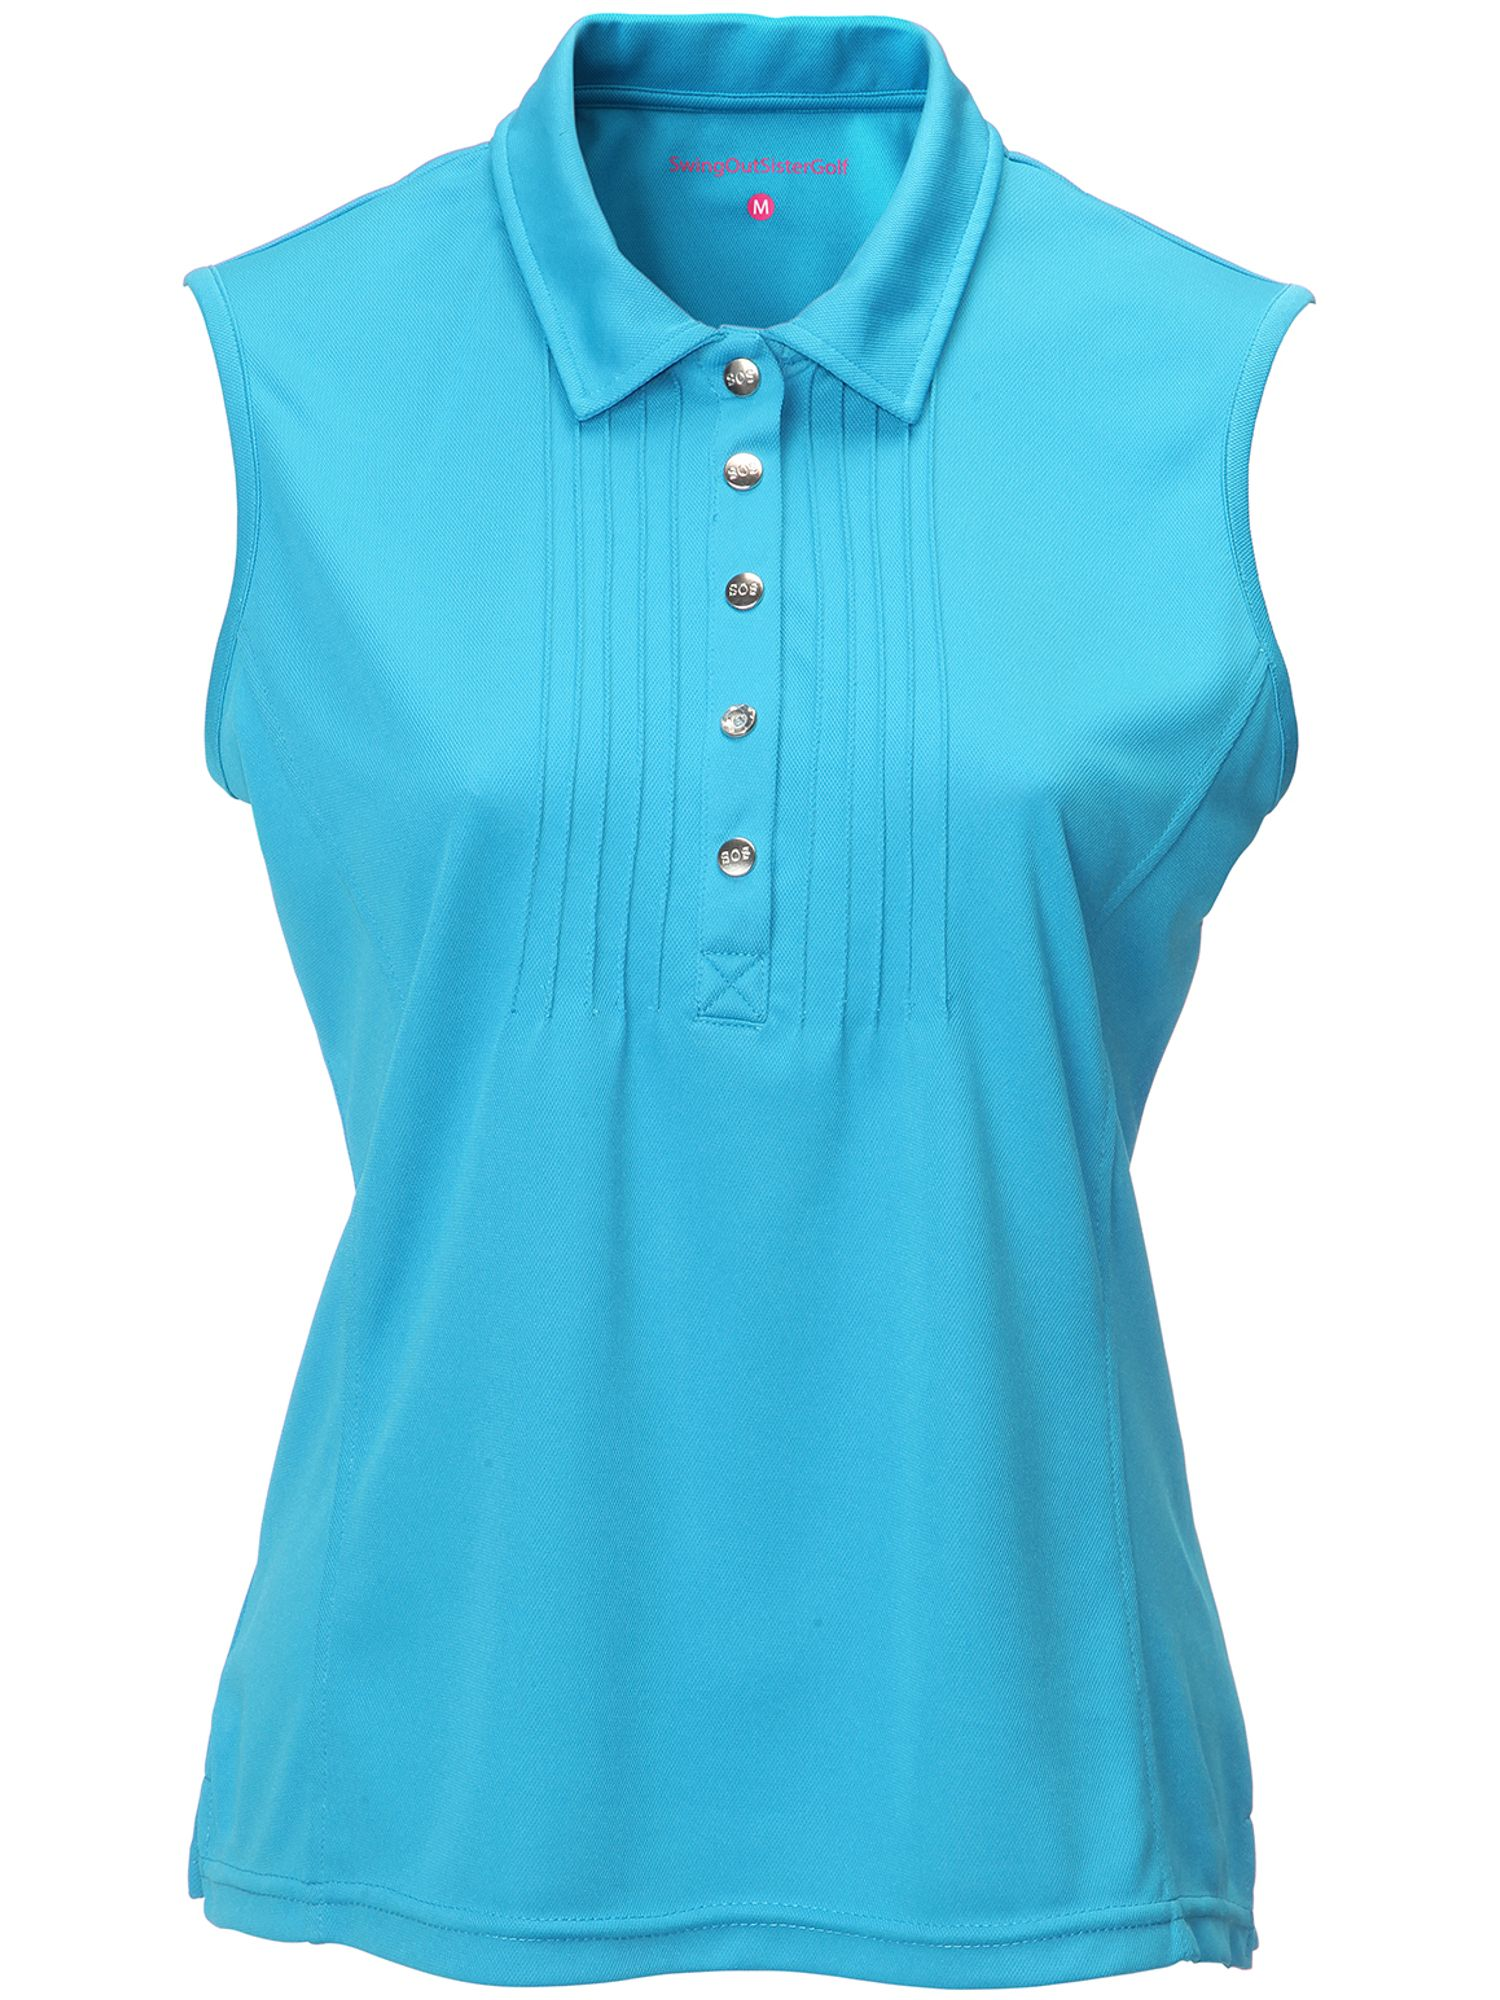 Swing Out Sister Adele Pique Sleeveless Shirt, Blue